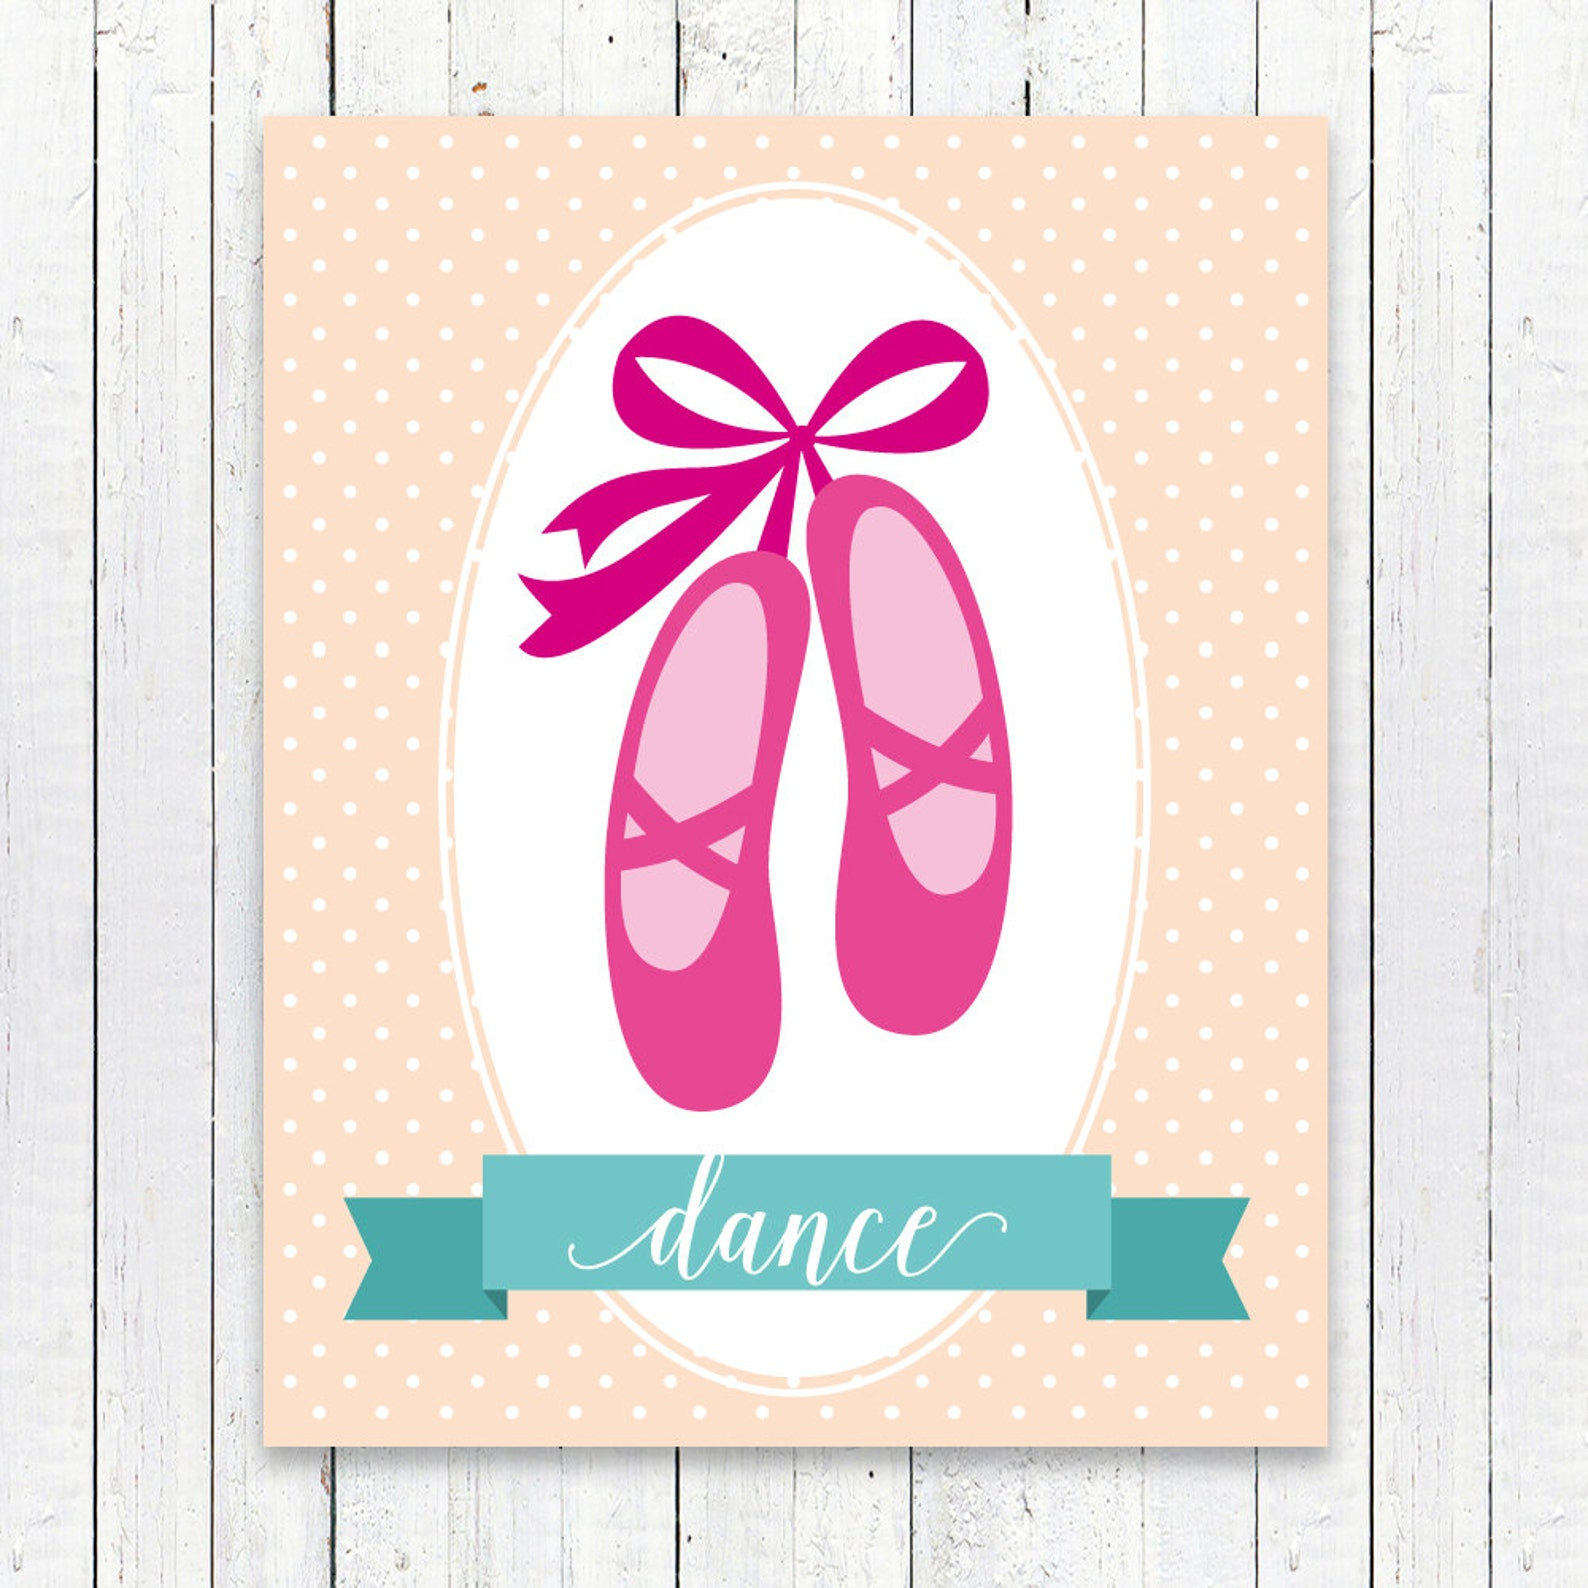 ballet art print, ballet wall print, ballet room art, playroom decor, nursery art, wall decor, children wall art, 8x10 print